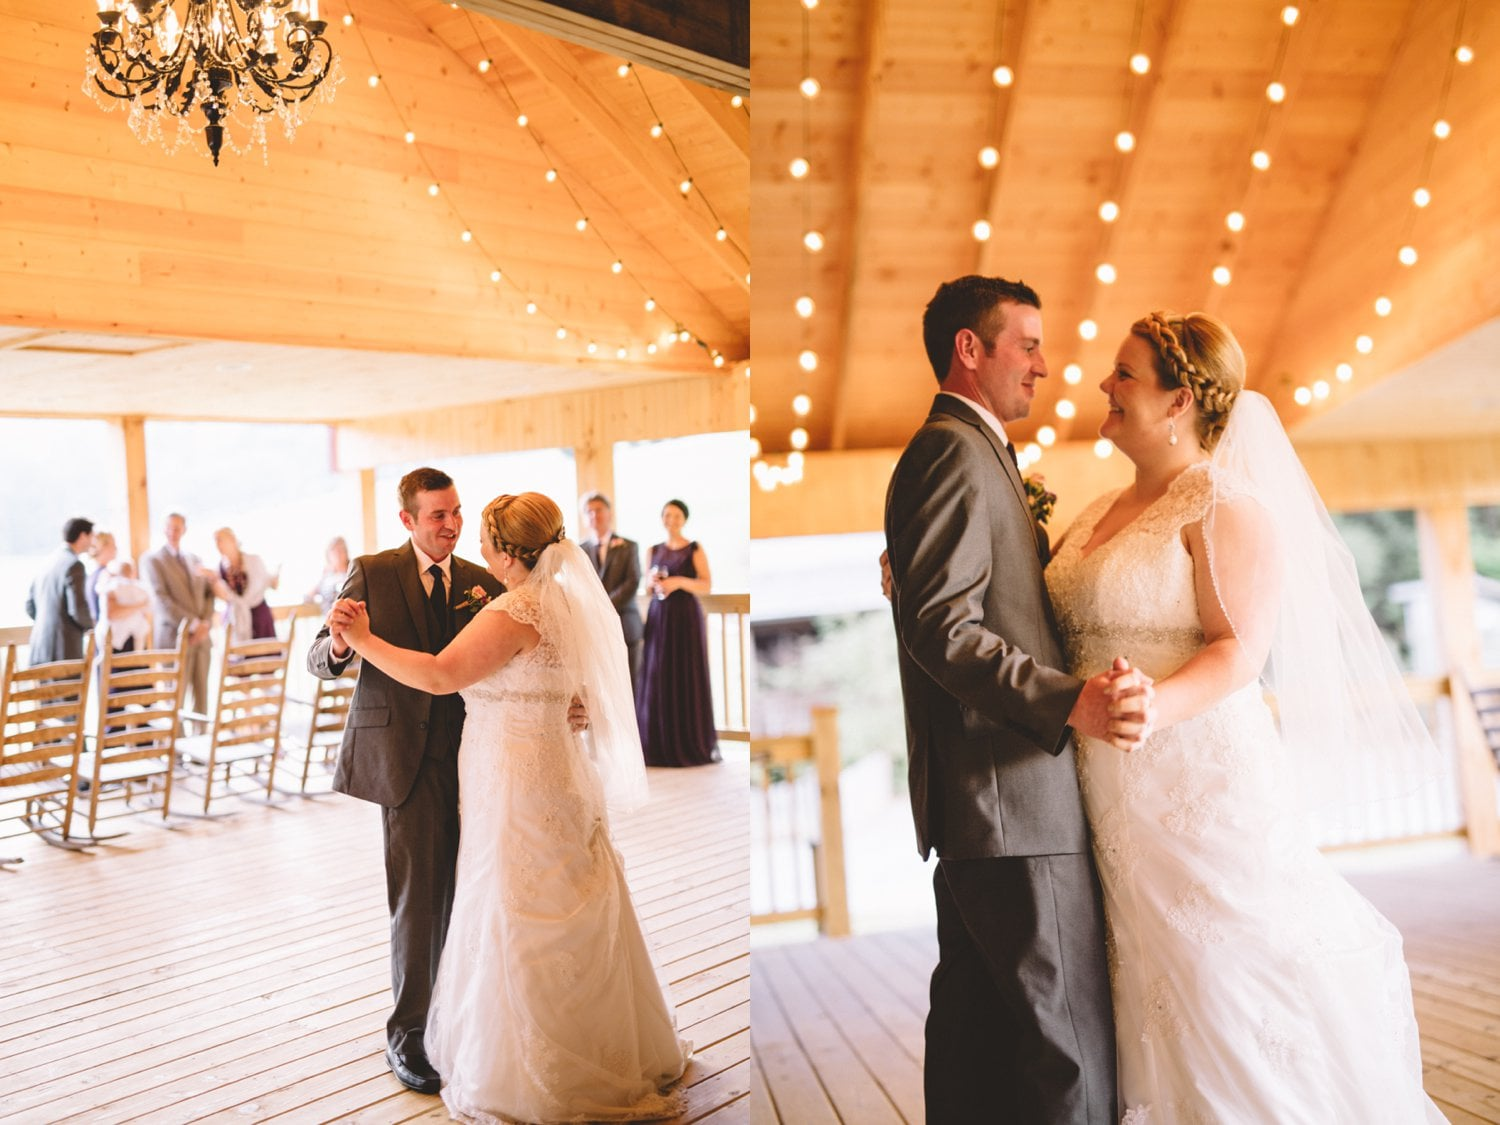 Sampsons_Hollow_Wedding_Walden_TN_-4.jpg